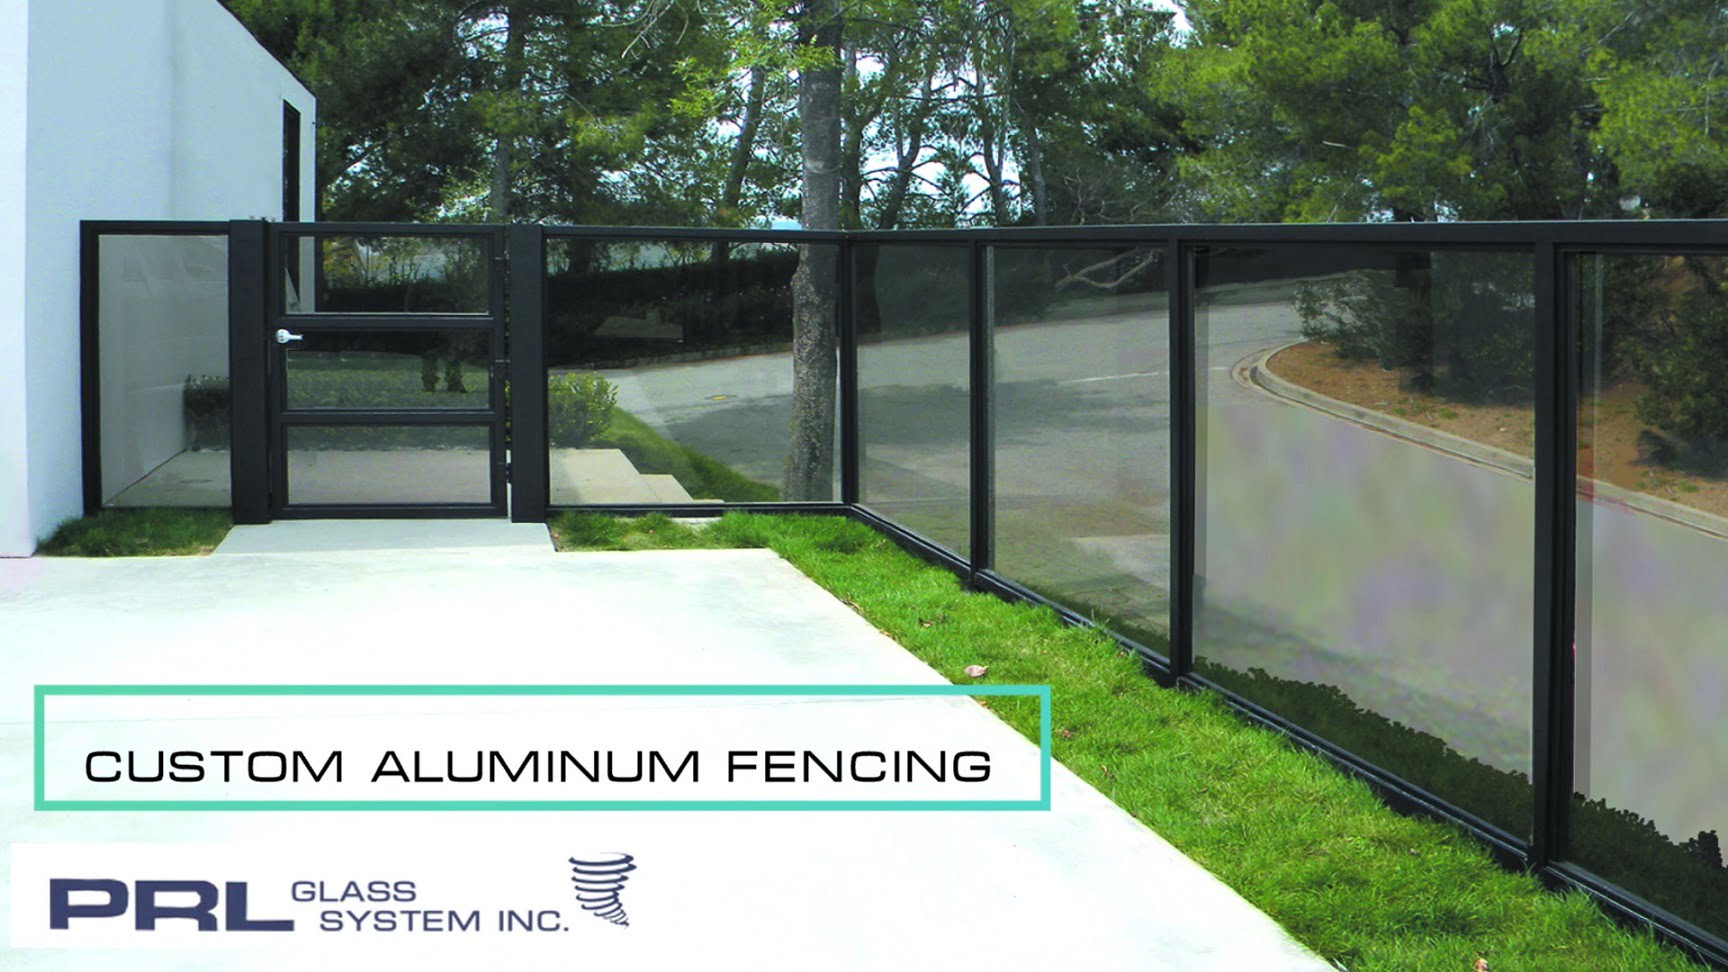 Glass Fencing Video